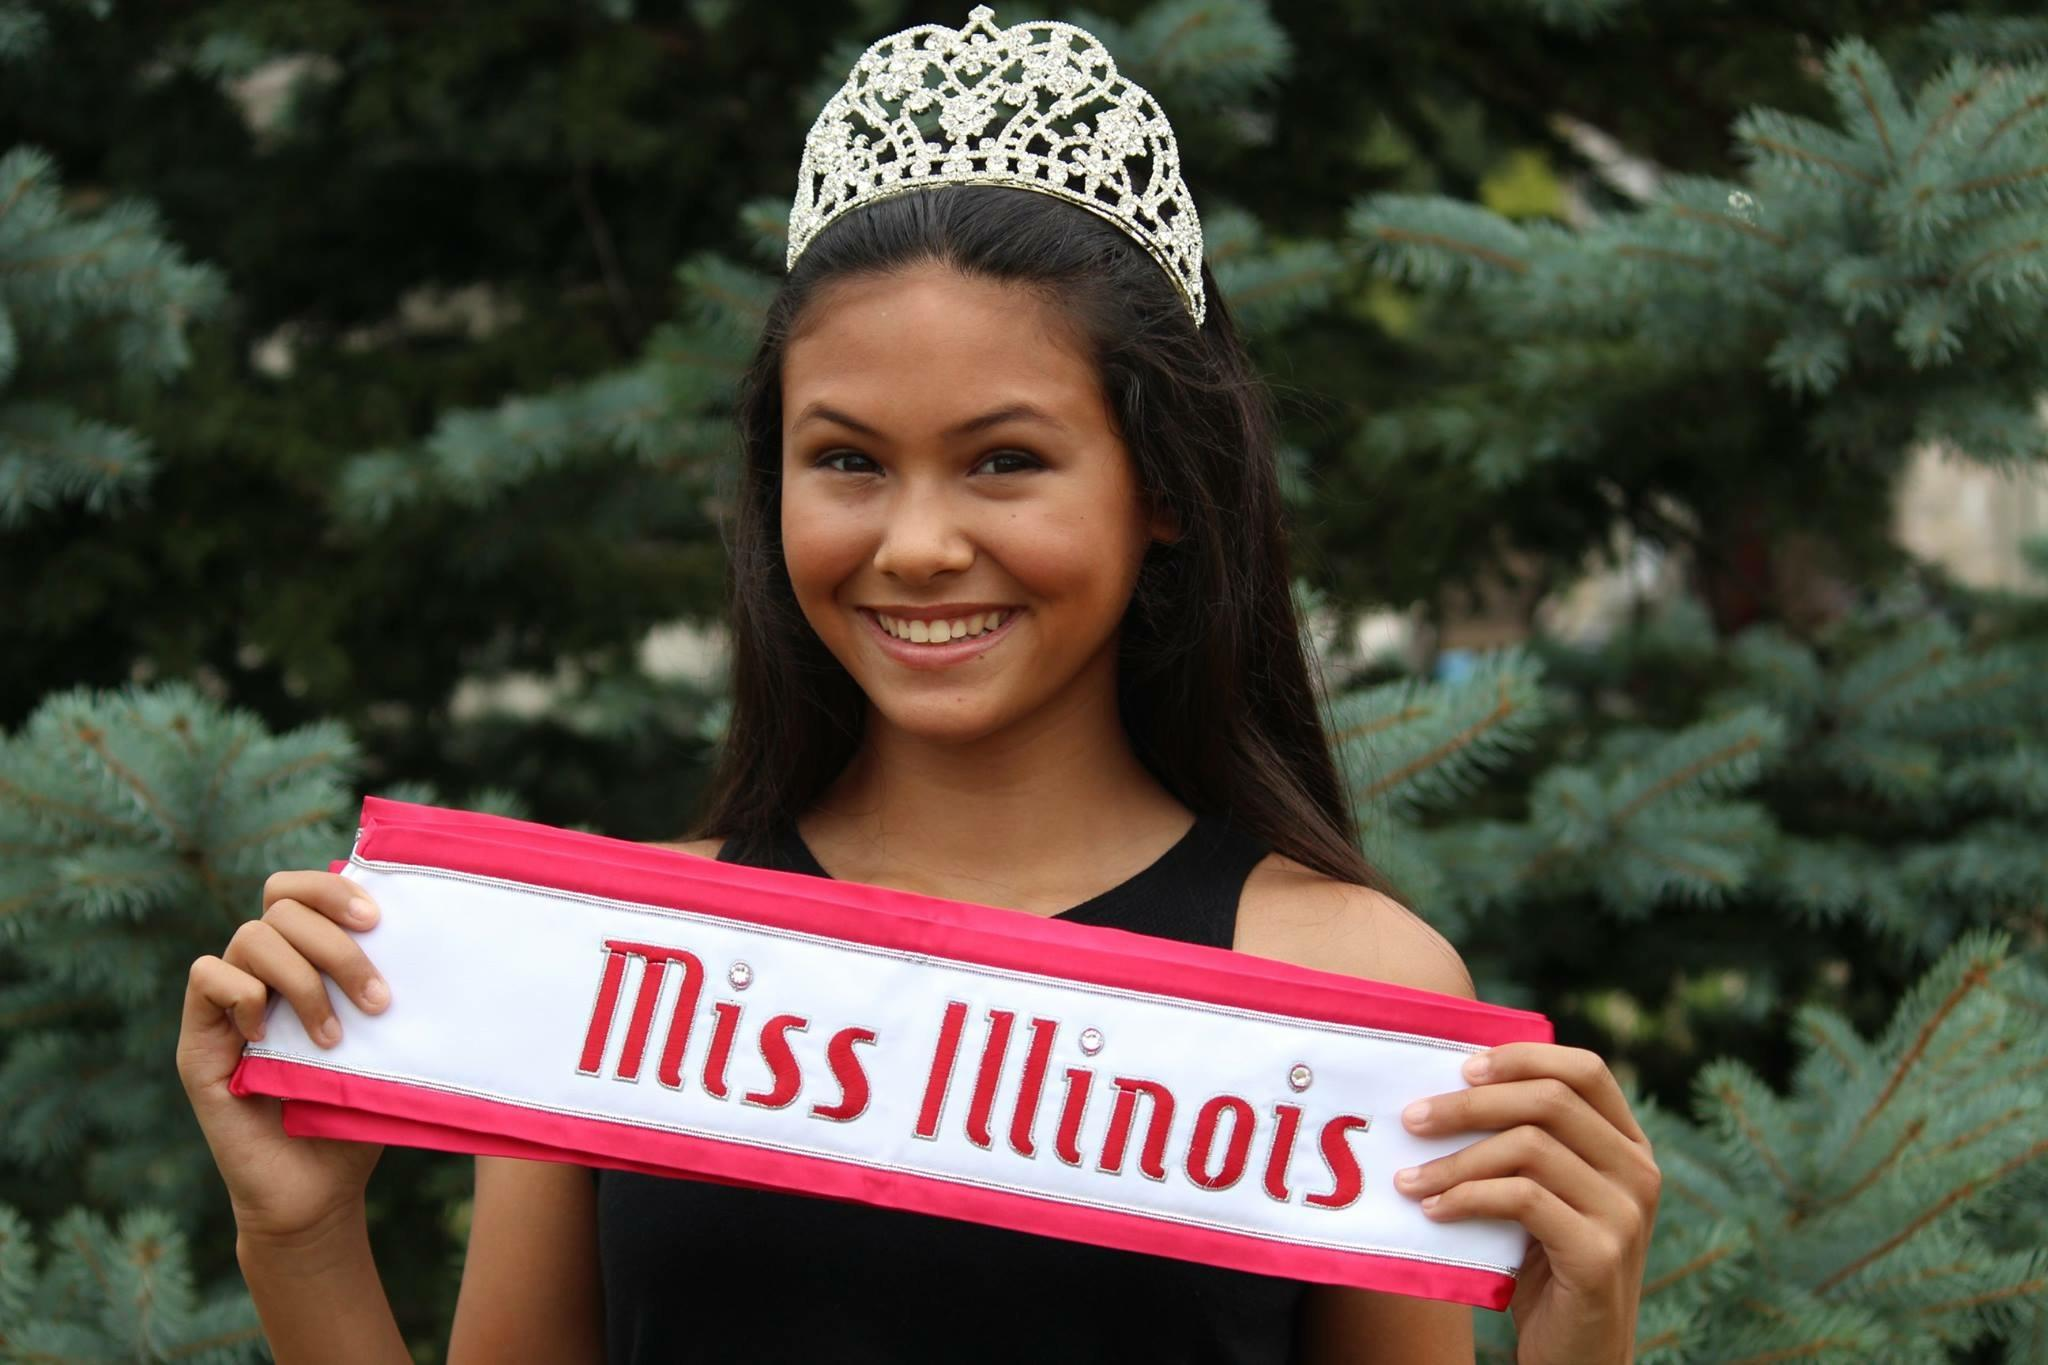 Castro with her sash and crown (Courtesy of T. Castro).